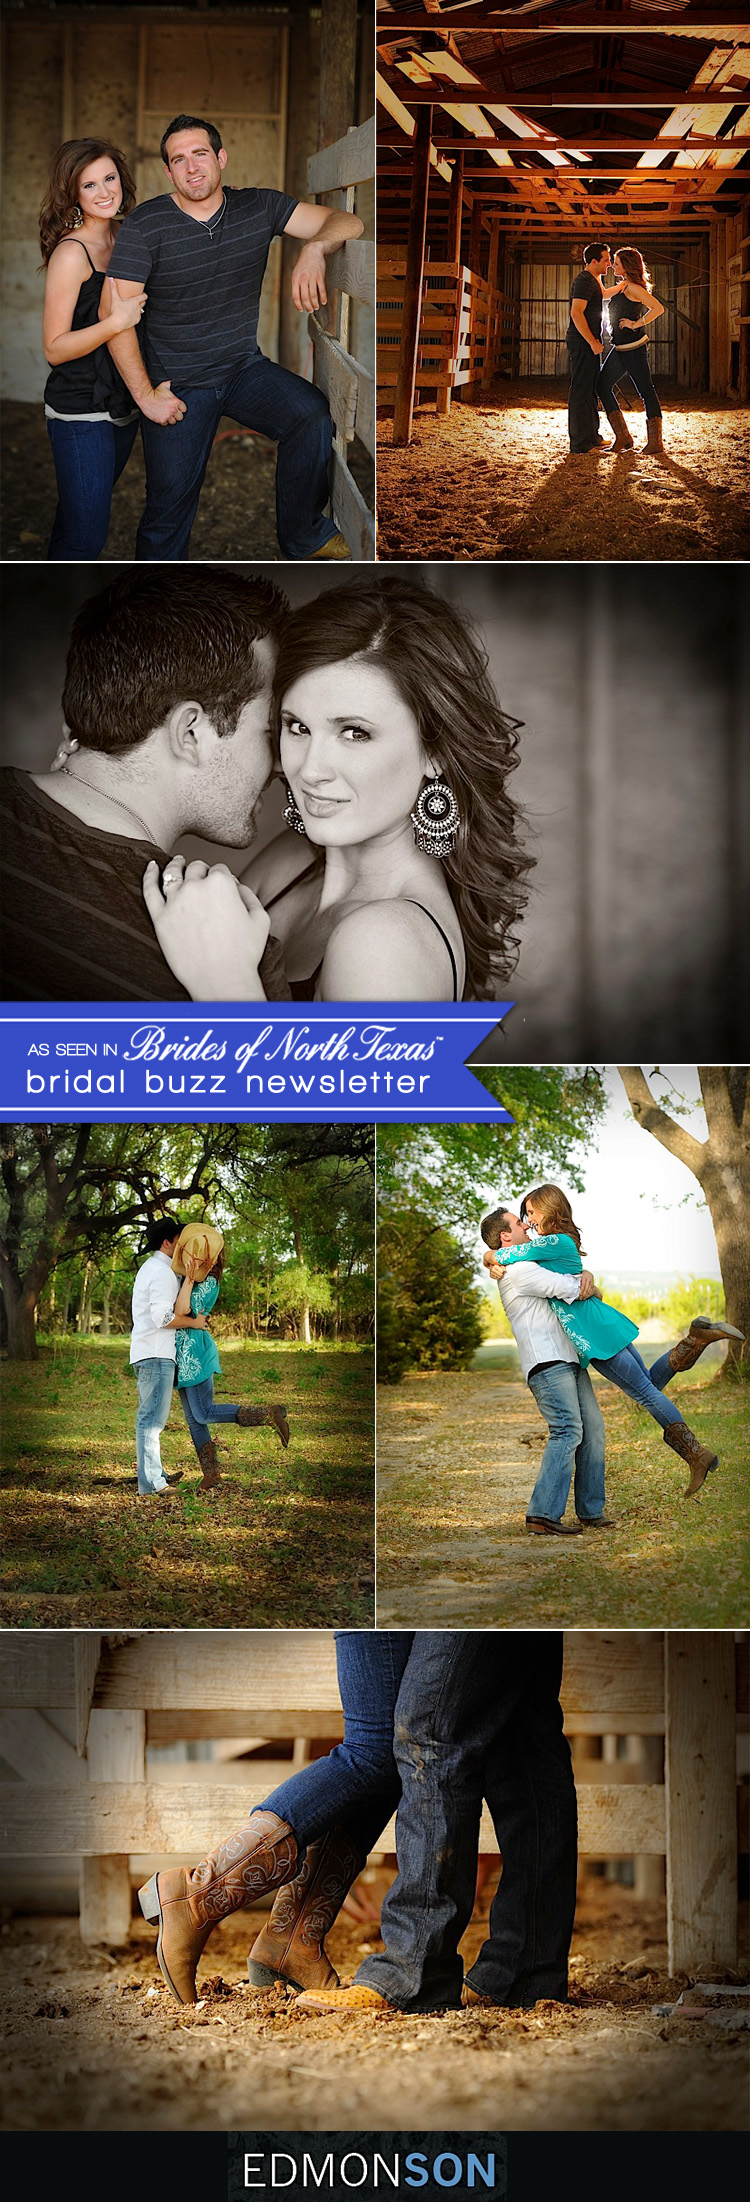 Brides of North Texas almost married Edmonson Weddings